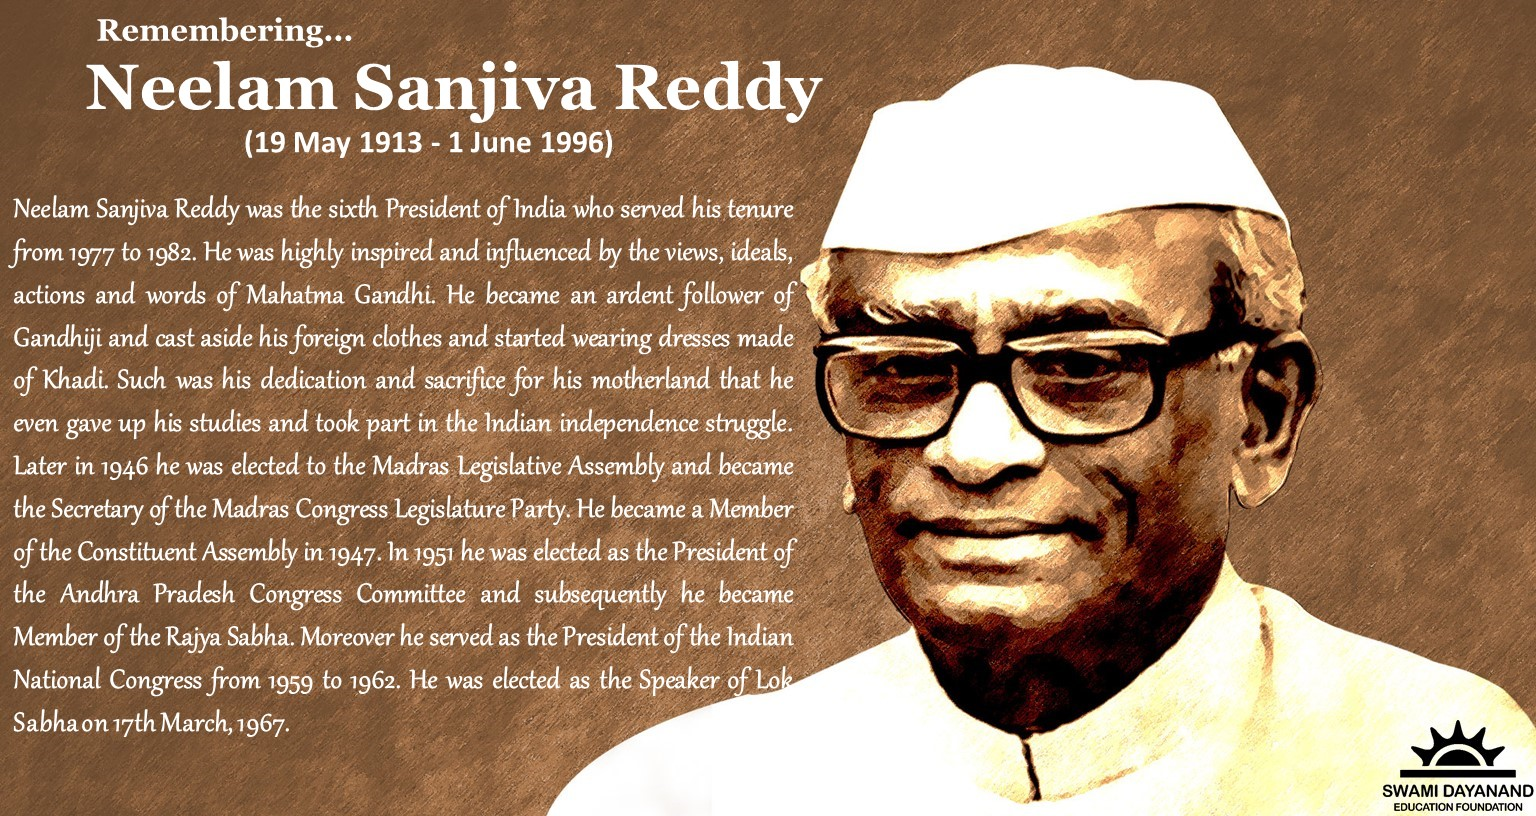 NEELAM SANJIVA REDDY  (19th May 1913 - 1st June 1996)